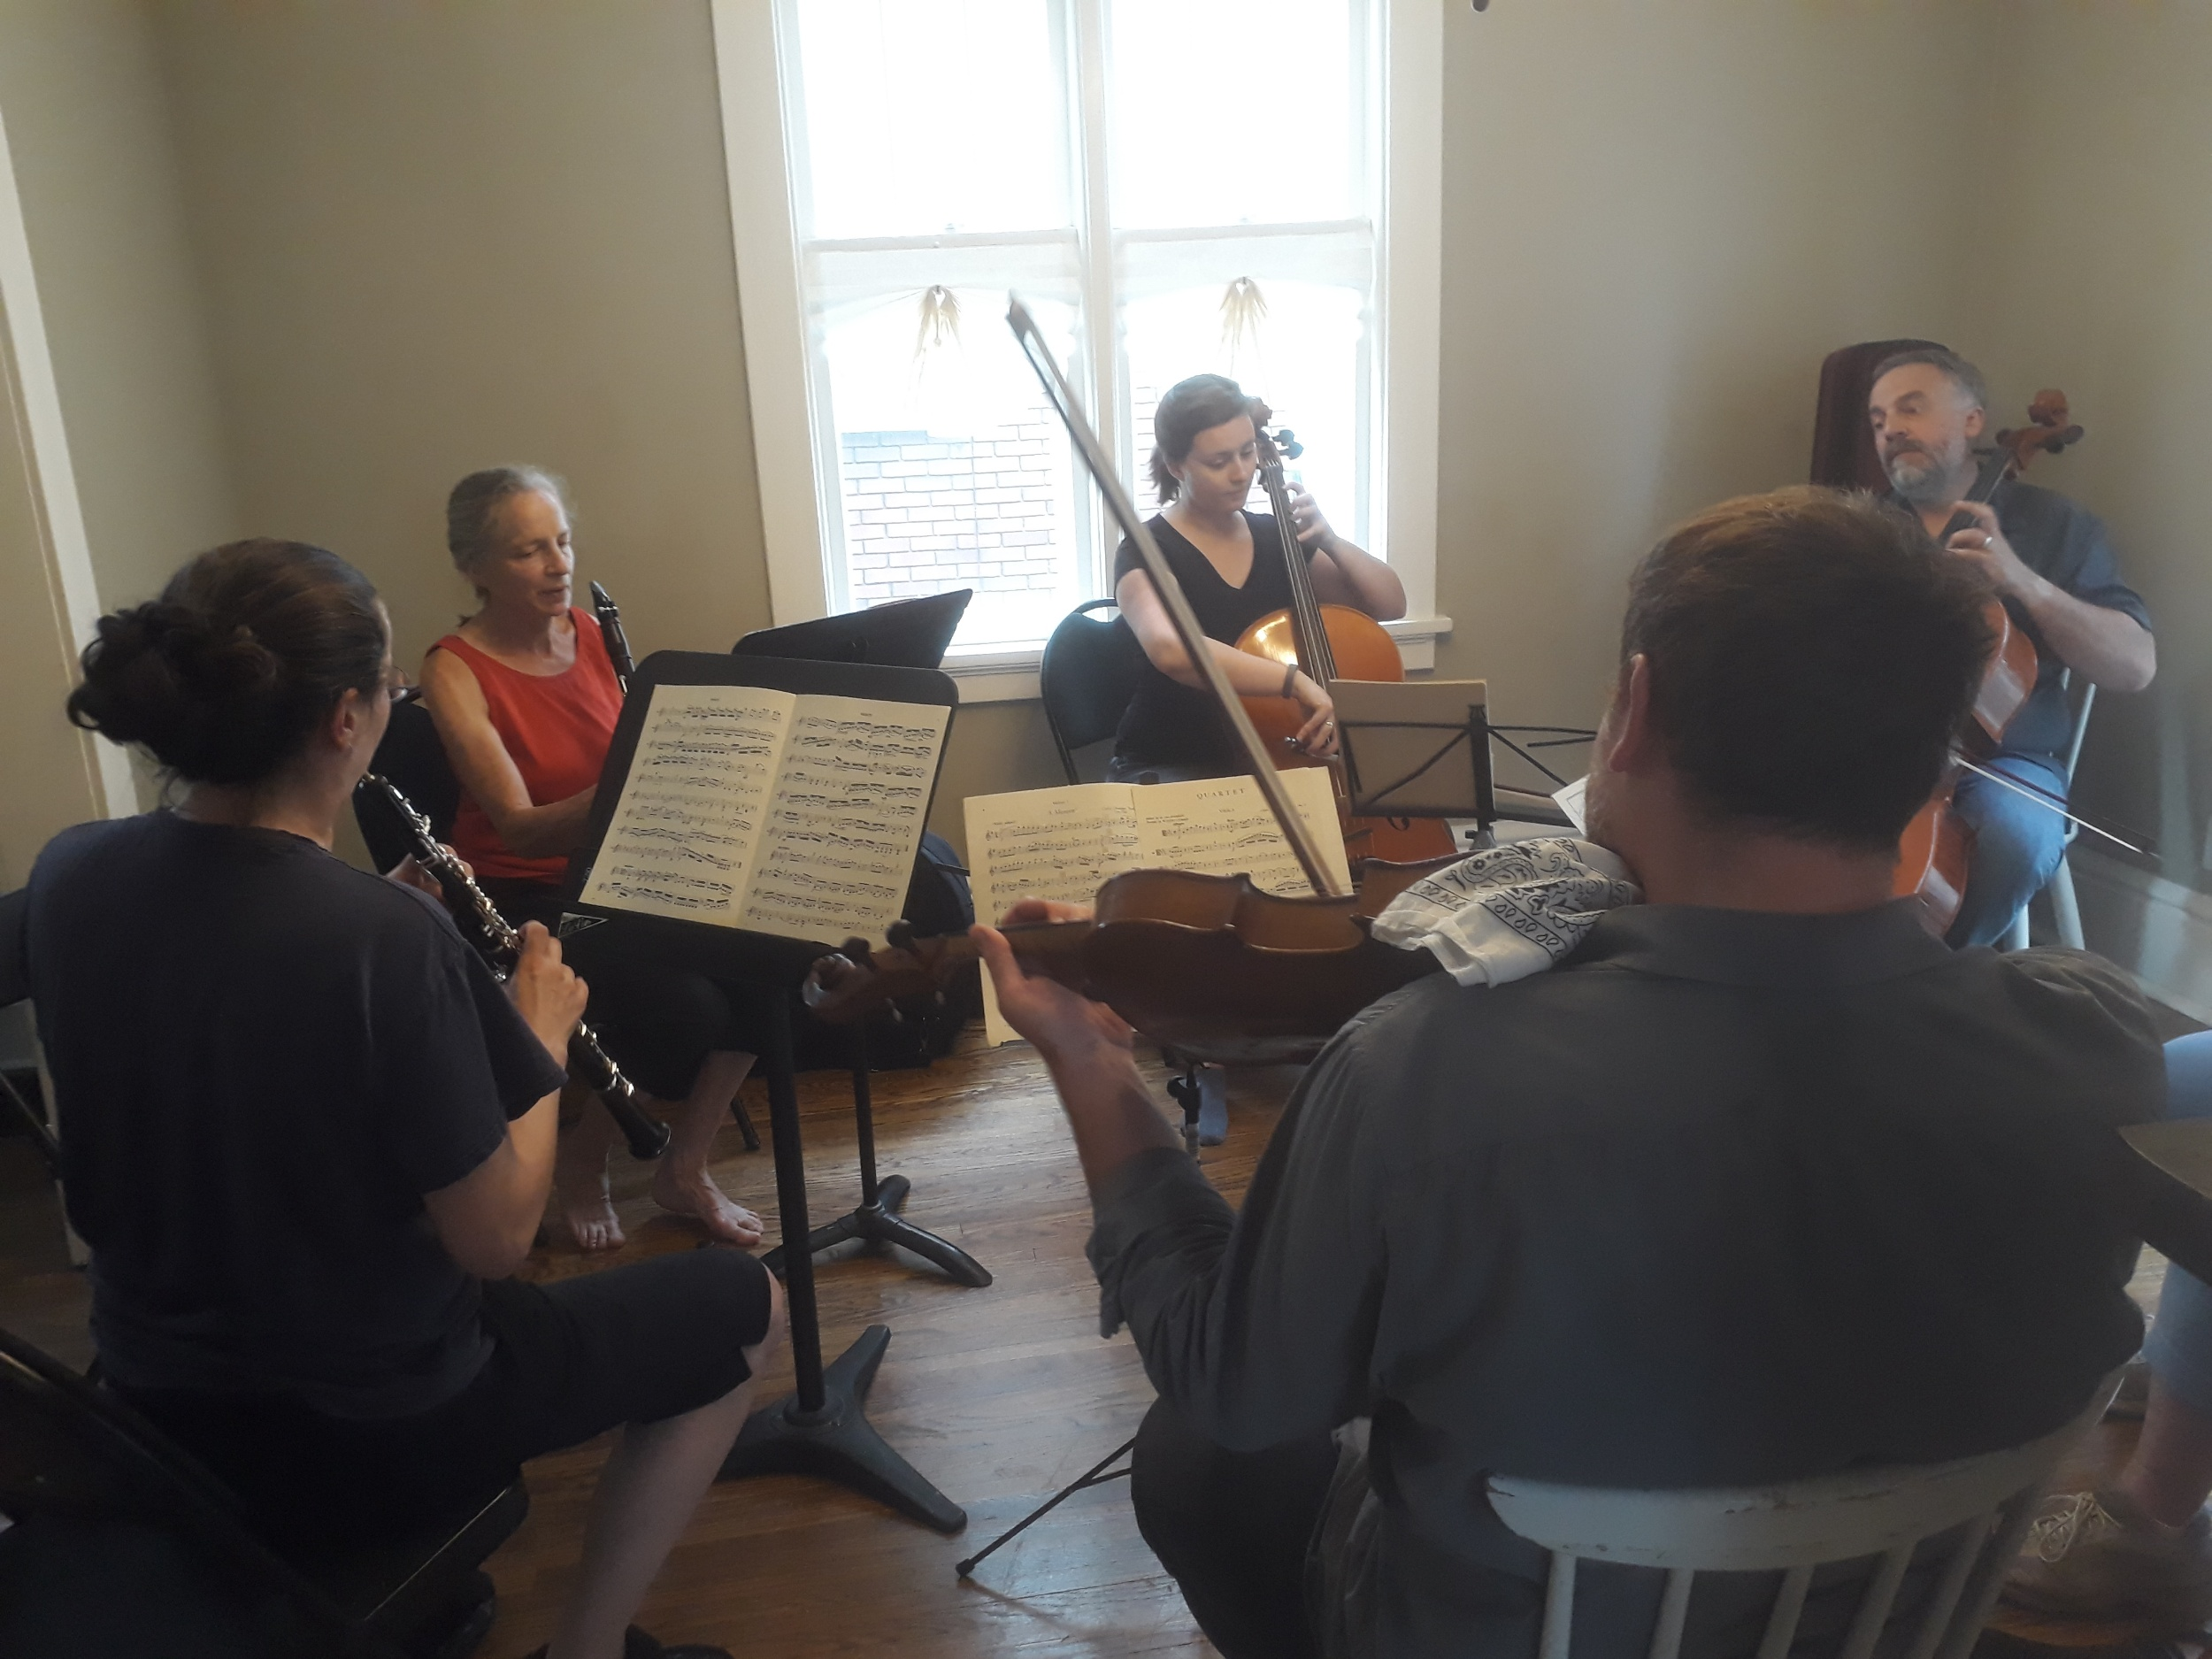 When we were (mostly) done loading the U-Haul truck back in Kitchener, we did what everybody should do when they're moving out of a house - host a chamber music reading party! What a great way to say goodbye.